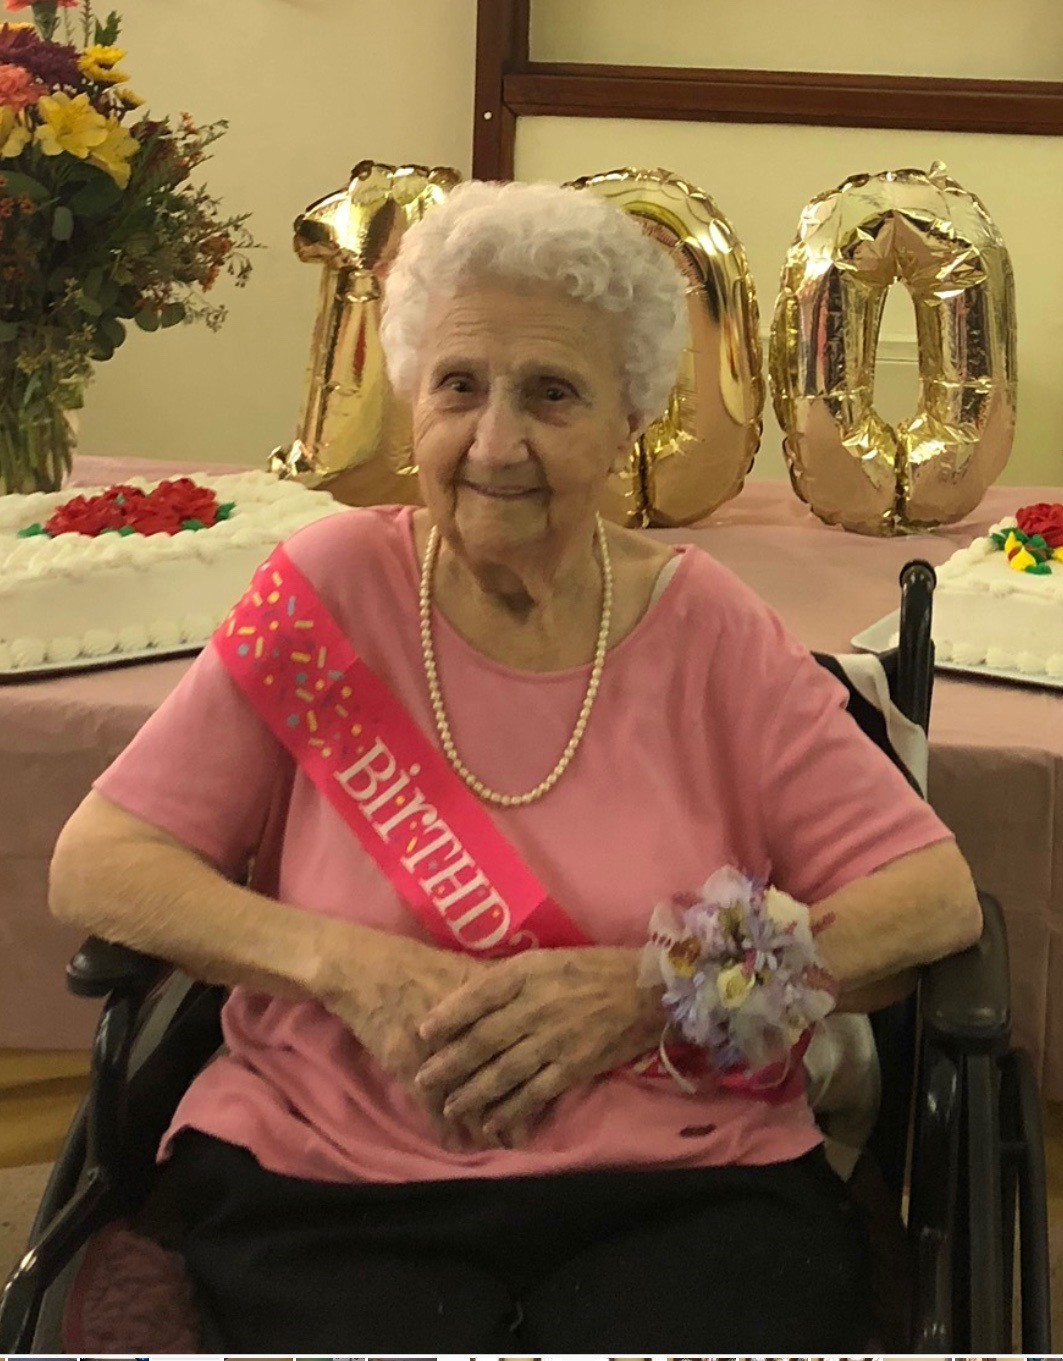 Funeral Services for Alta McIntosh, age 100